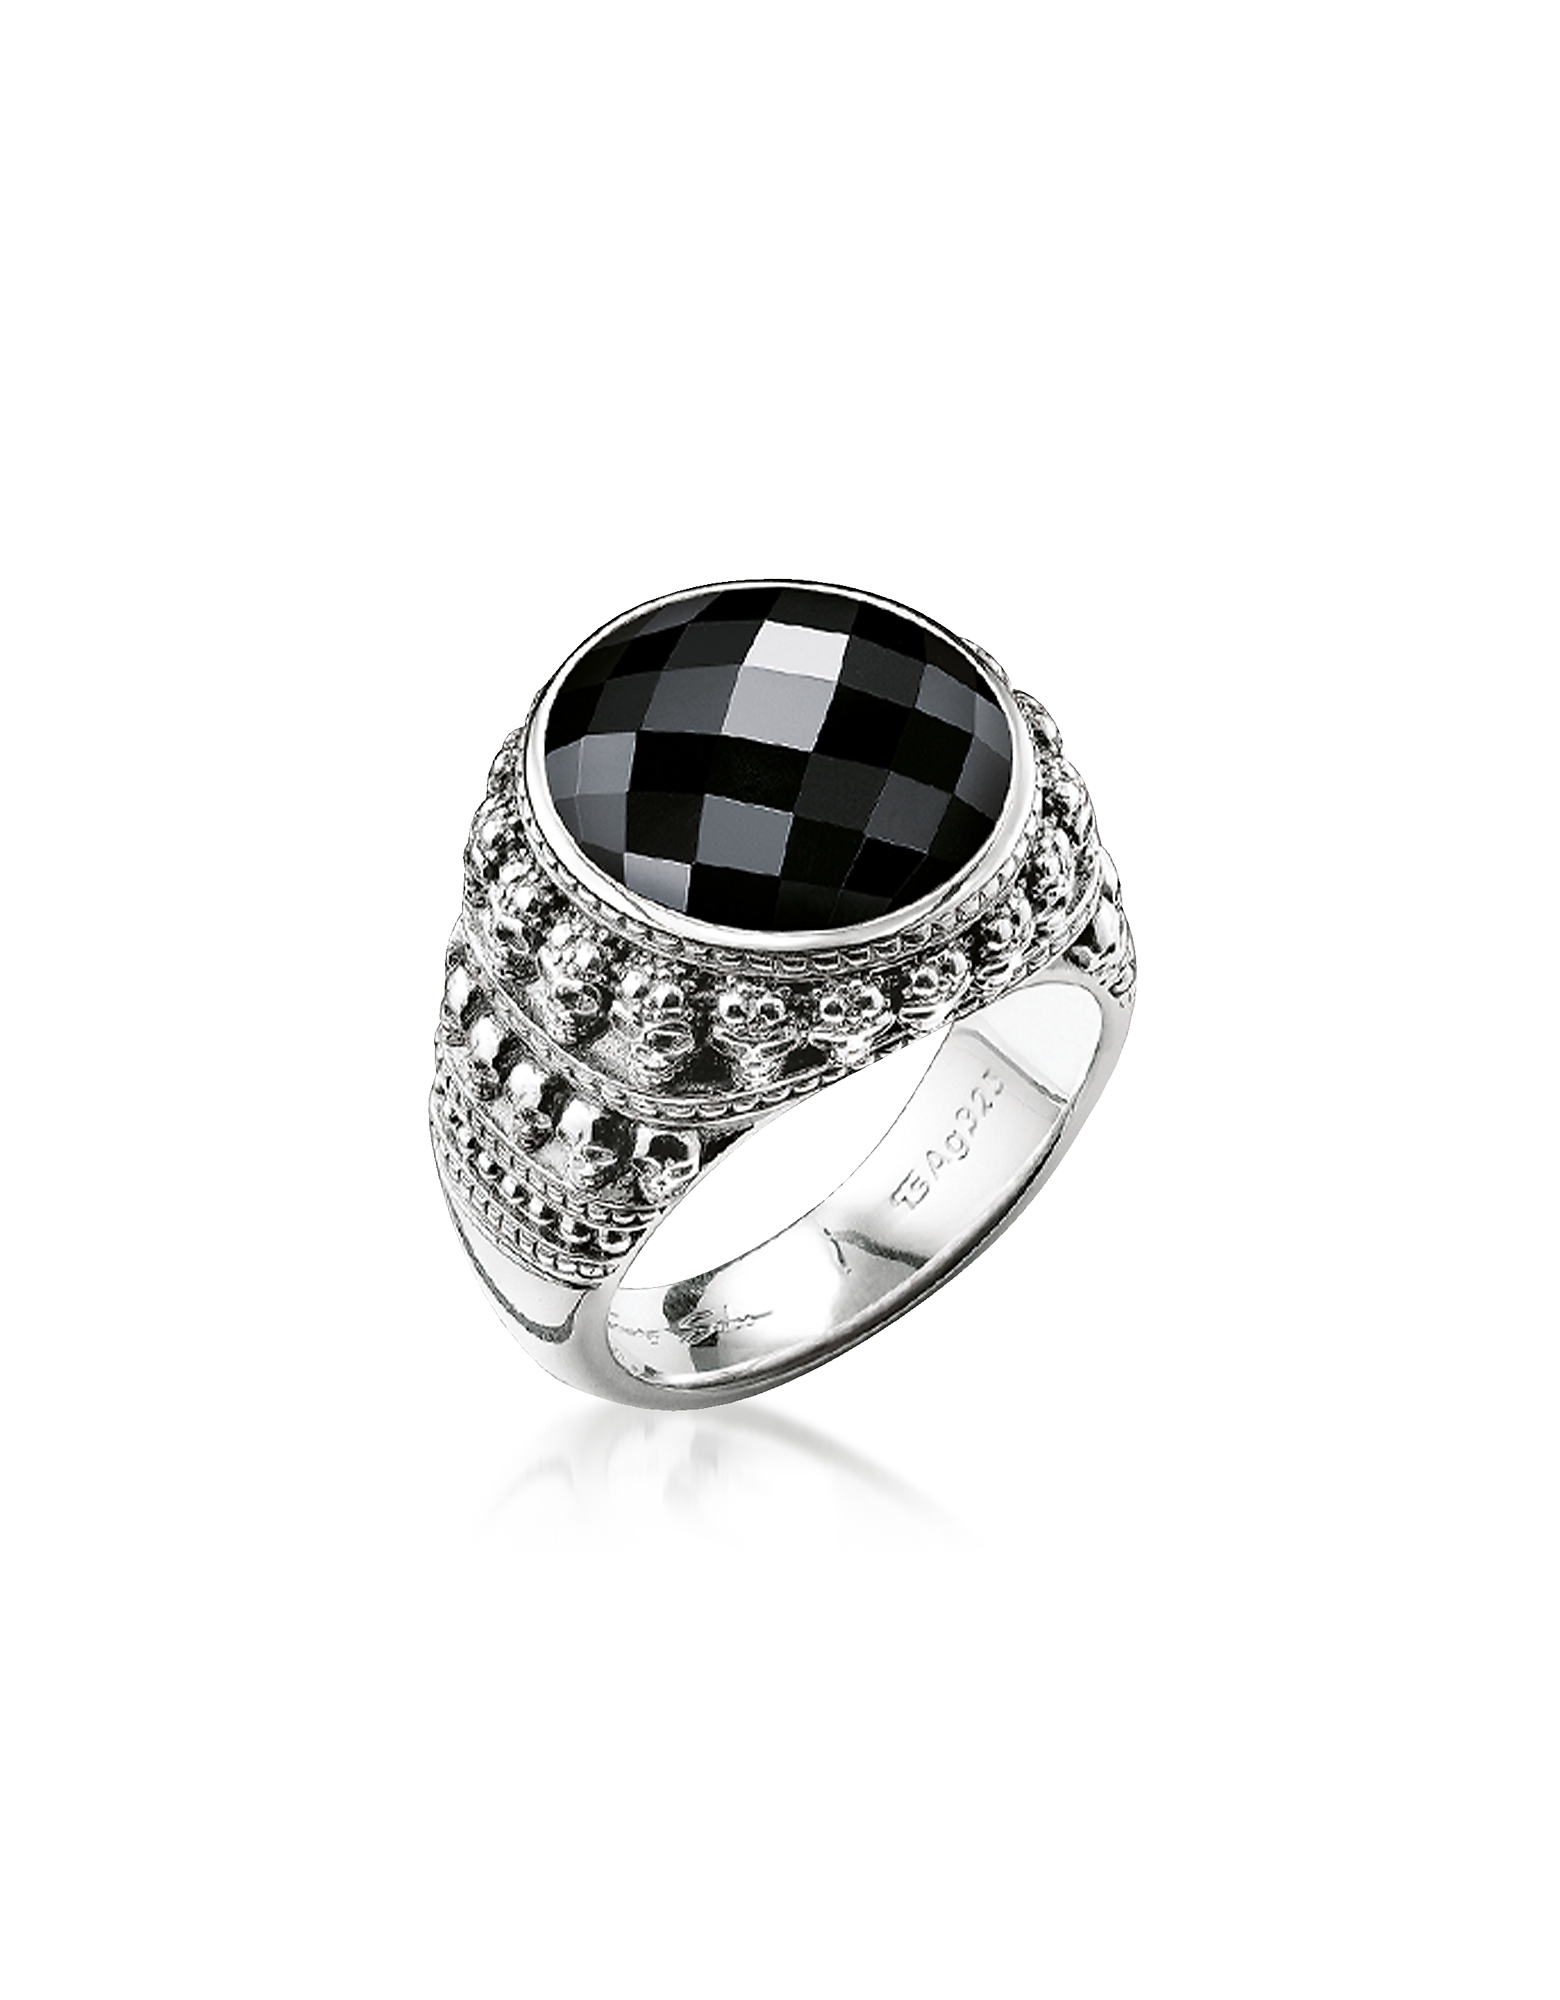 Thomas Sabo Rings, Rebel Skulls Sterling Silver Ring w/Onyx